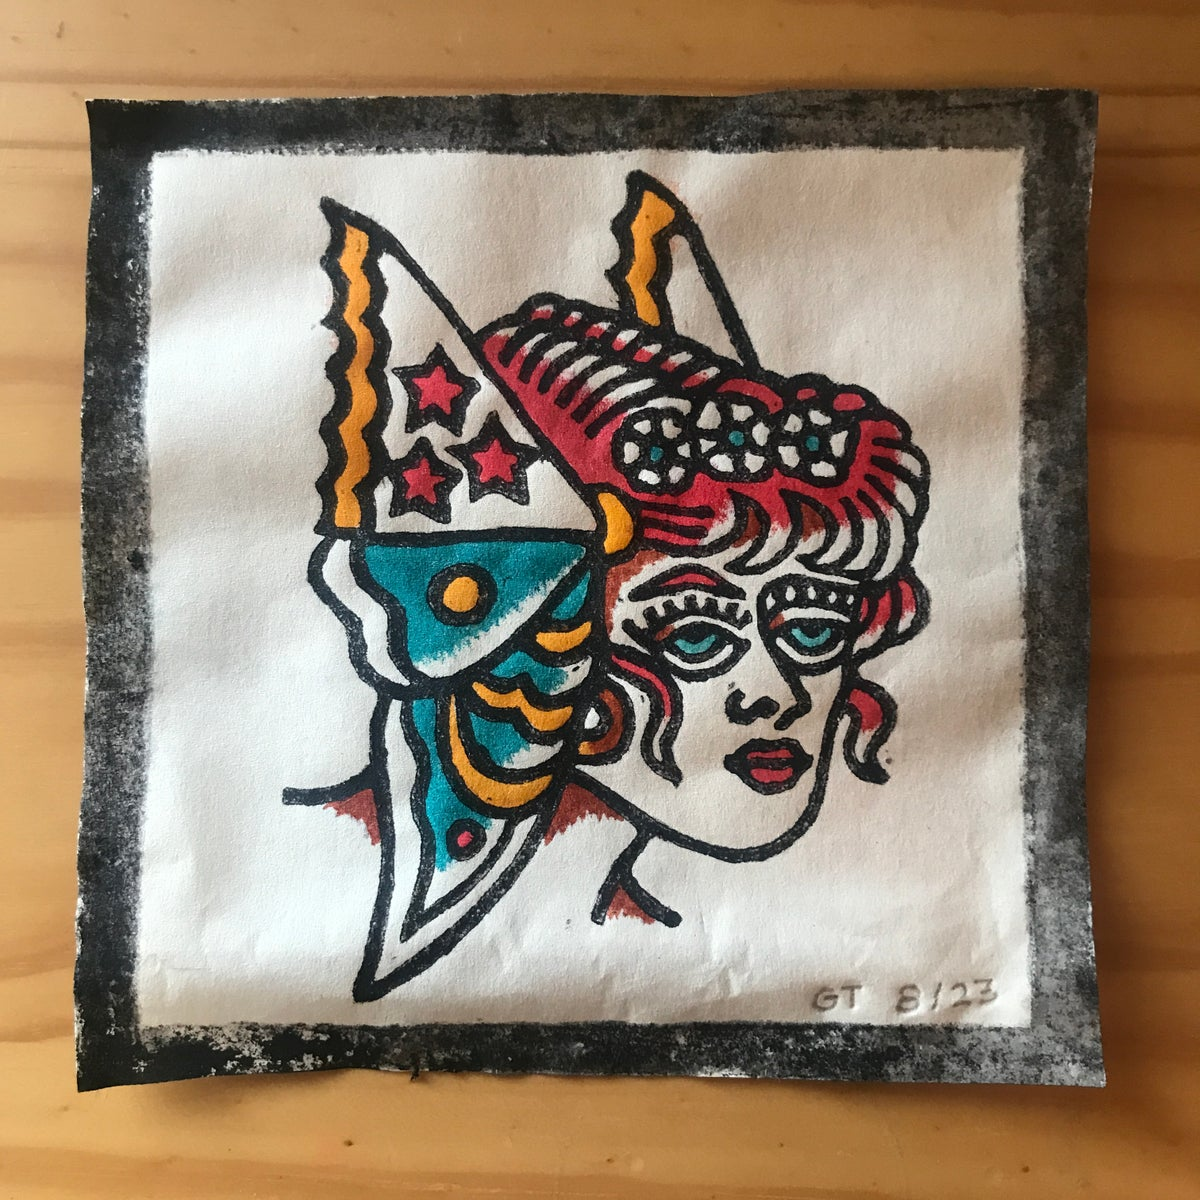 Image of Butterfly lady head woodcut print - 8/23